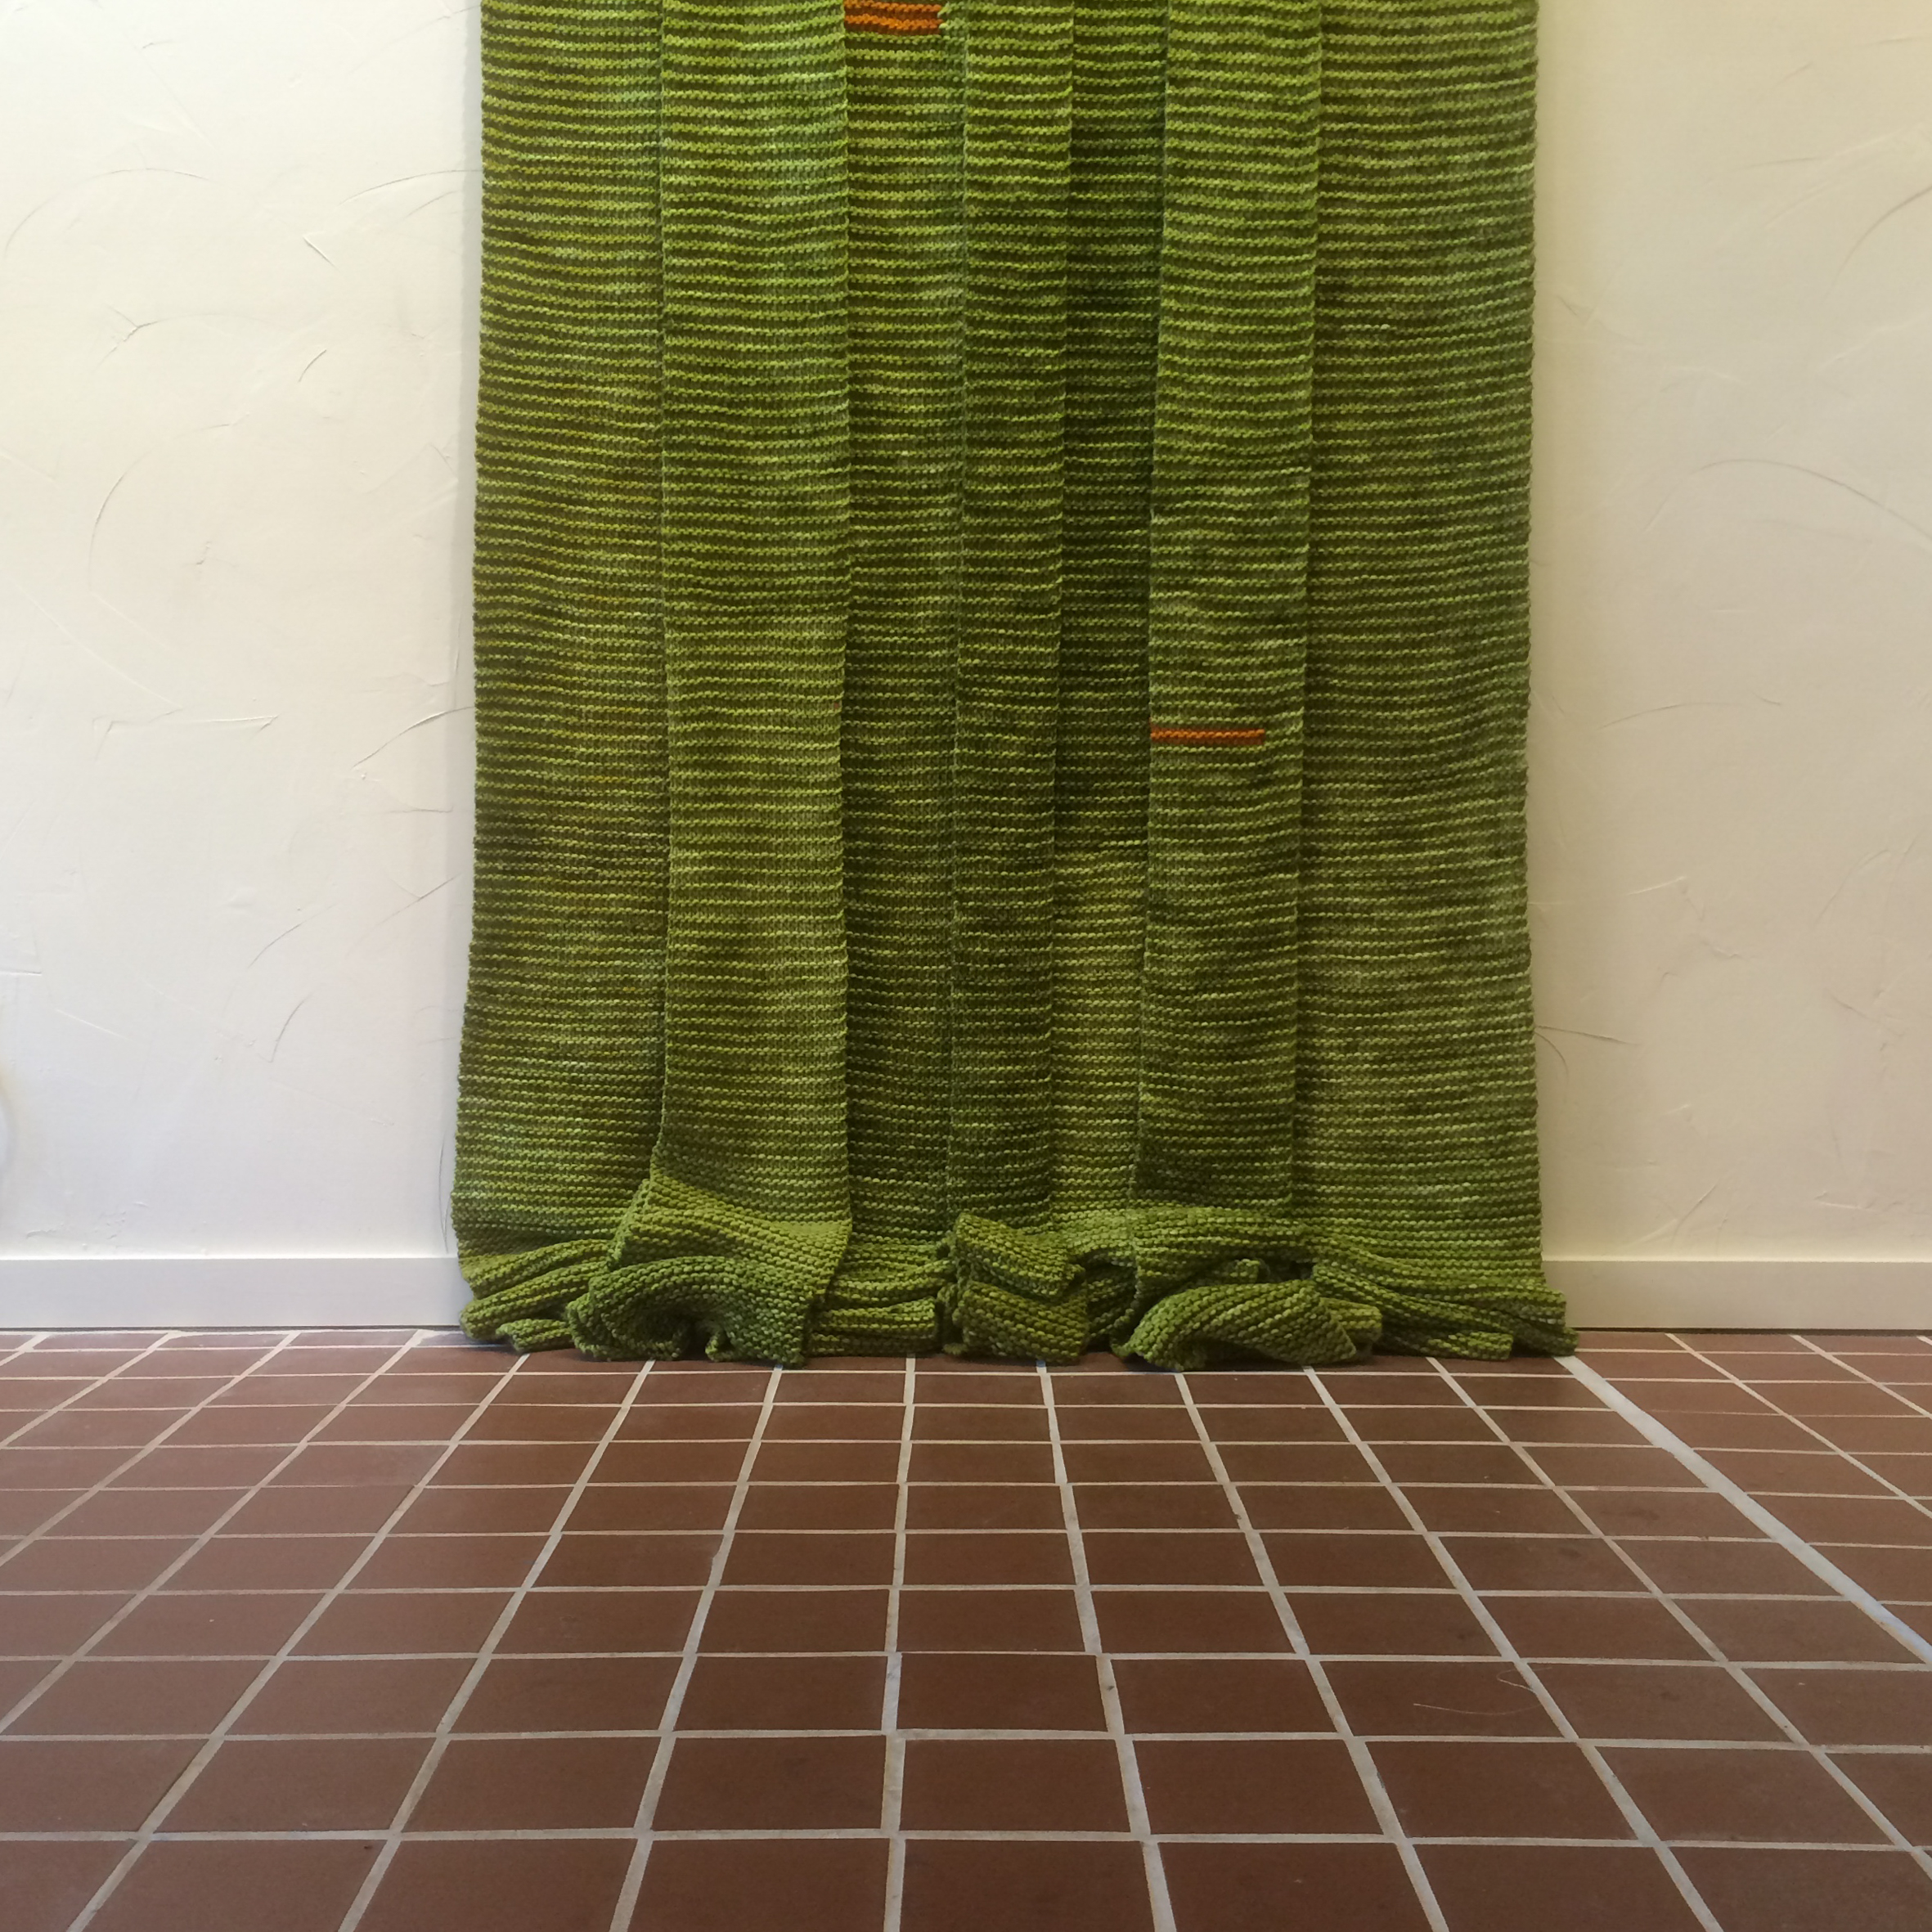 Entry to An Imagined Otherhood  | 2014  | hand-knitted wool | 120 x 48